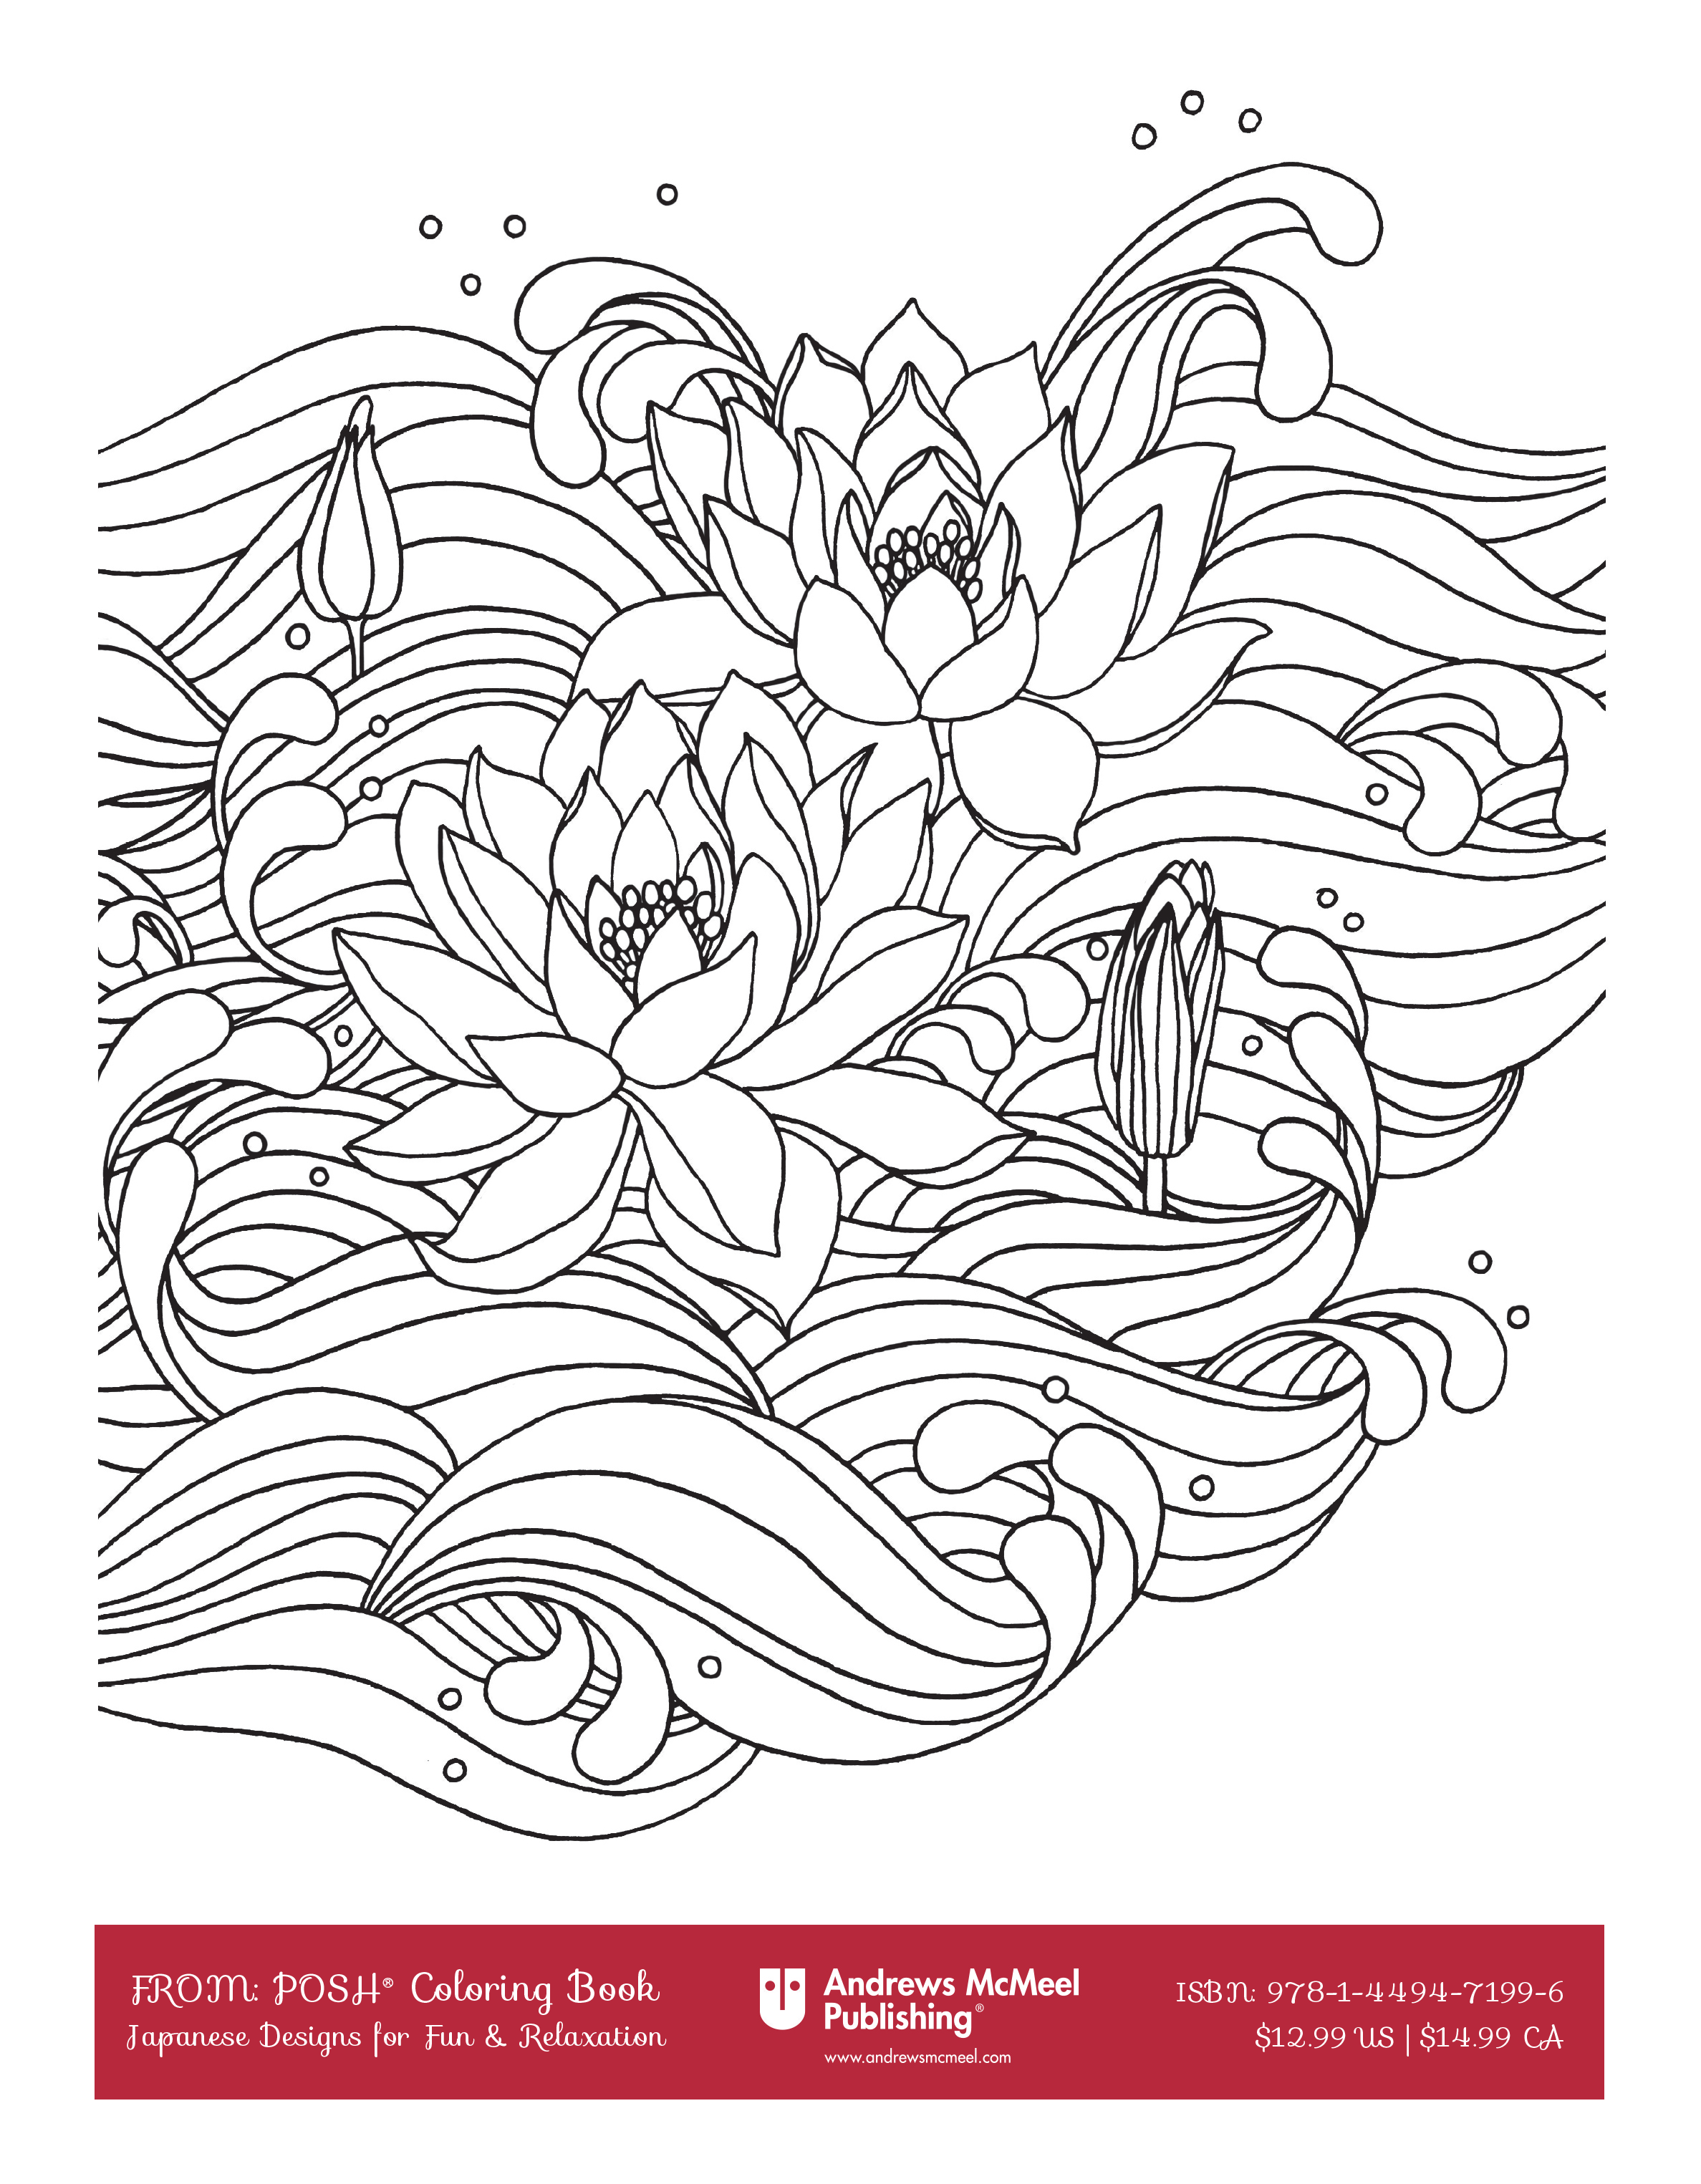 Lotus designs coloring book - A Page From The Japanese Designs Posh Coloring Book